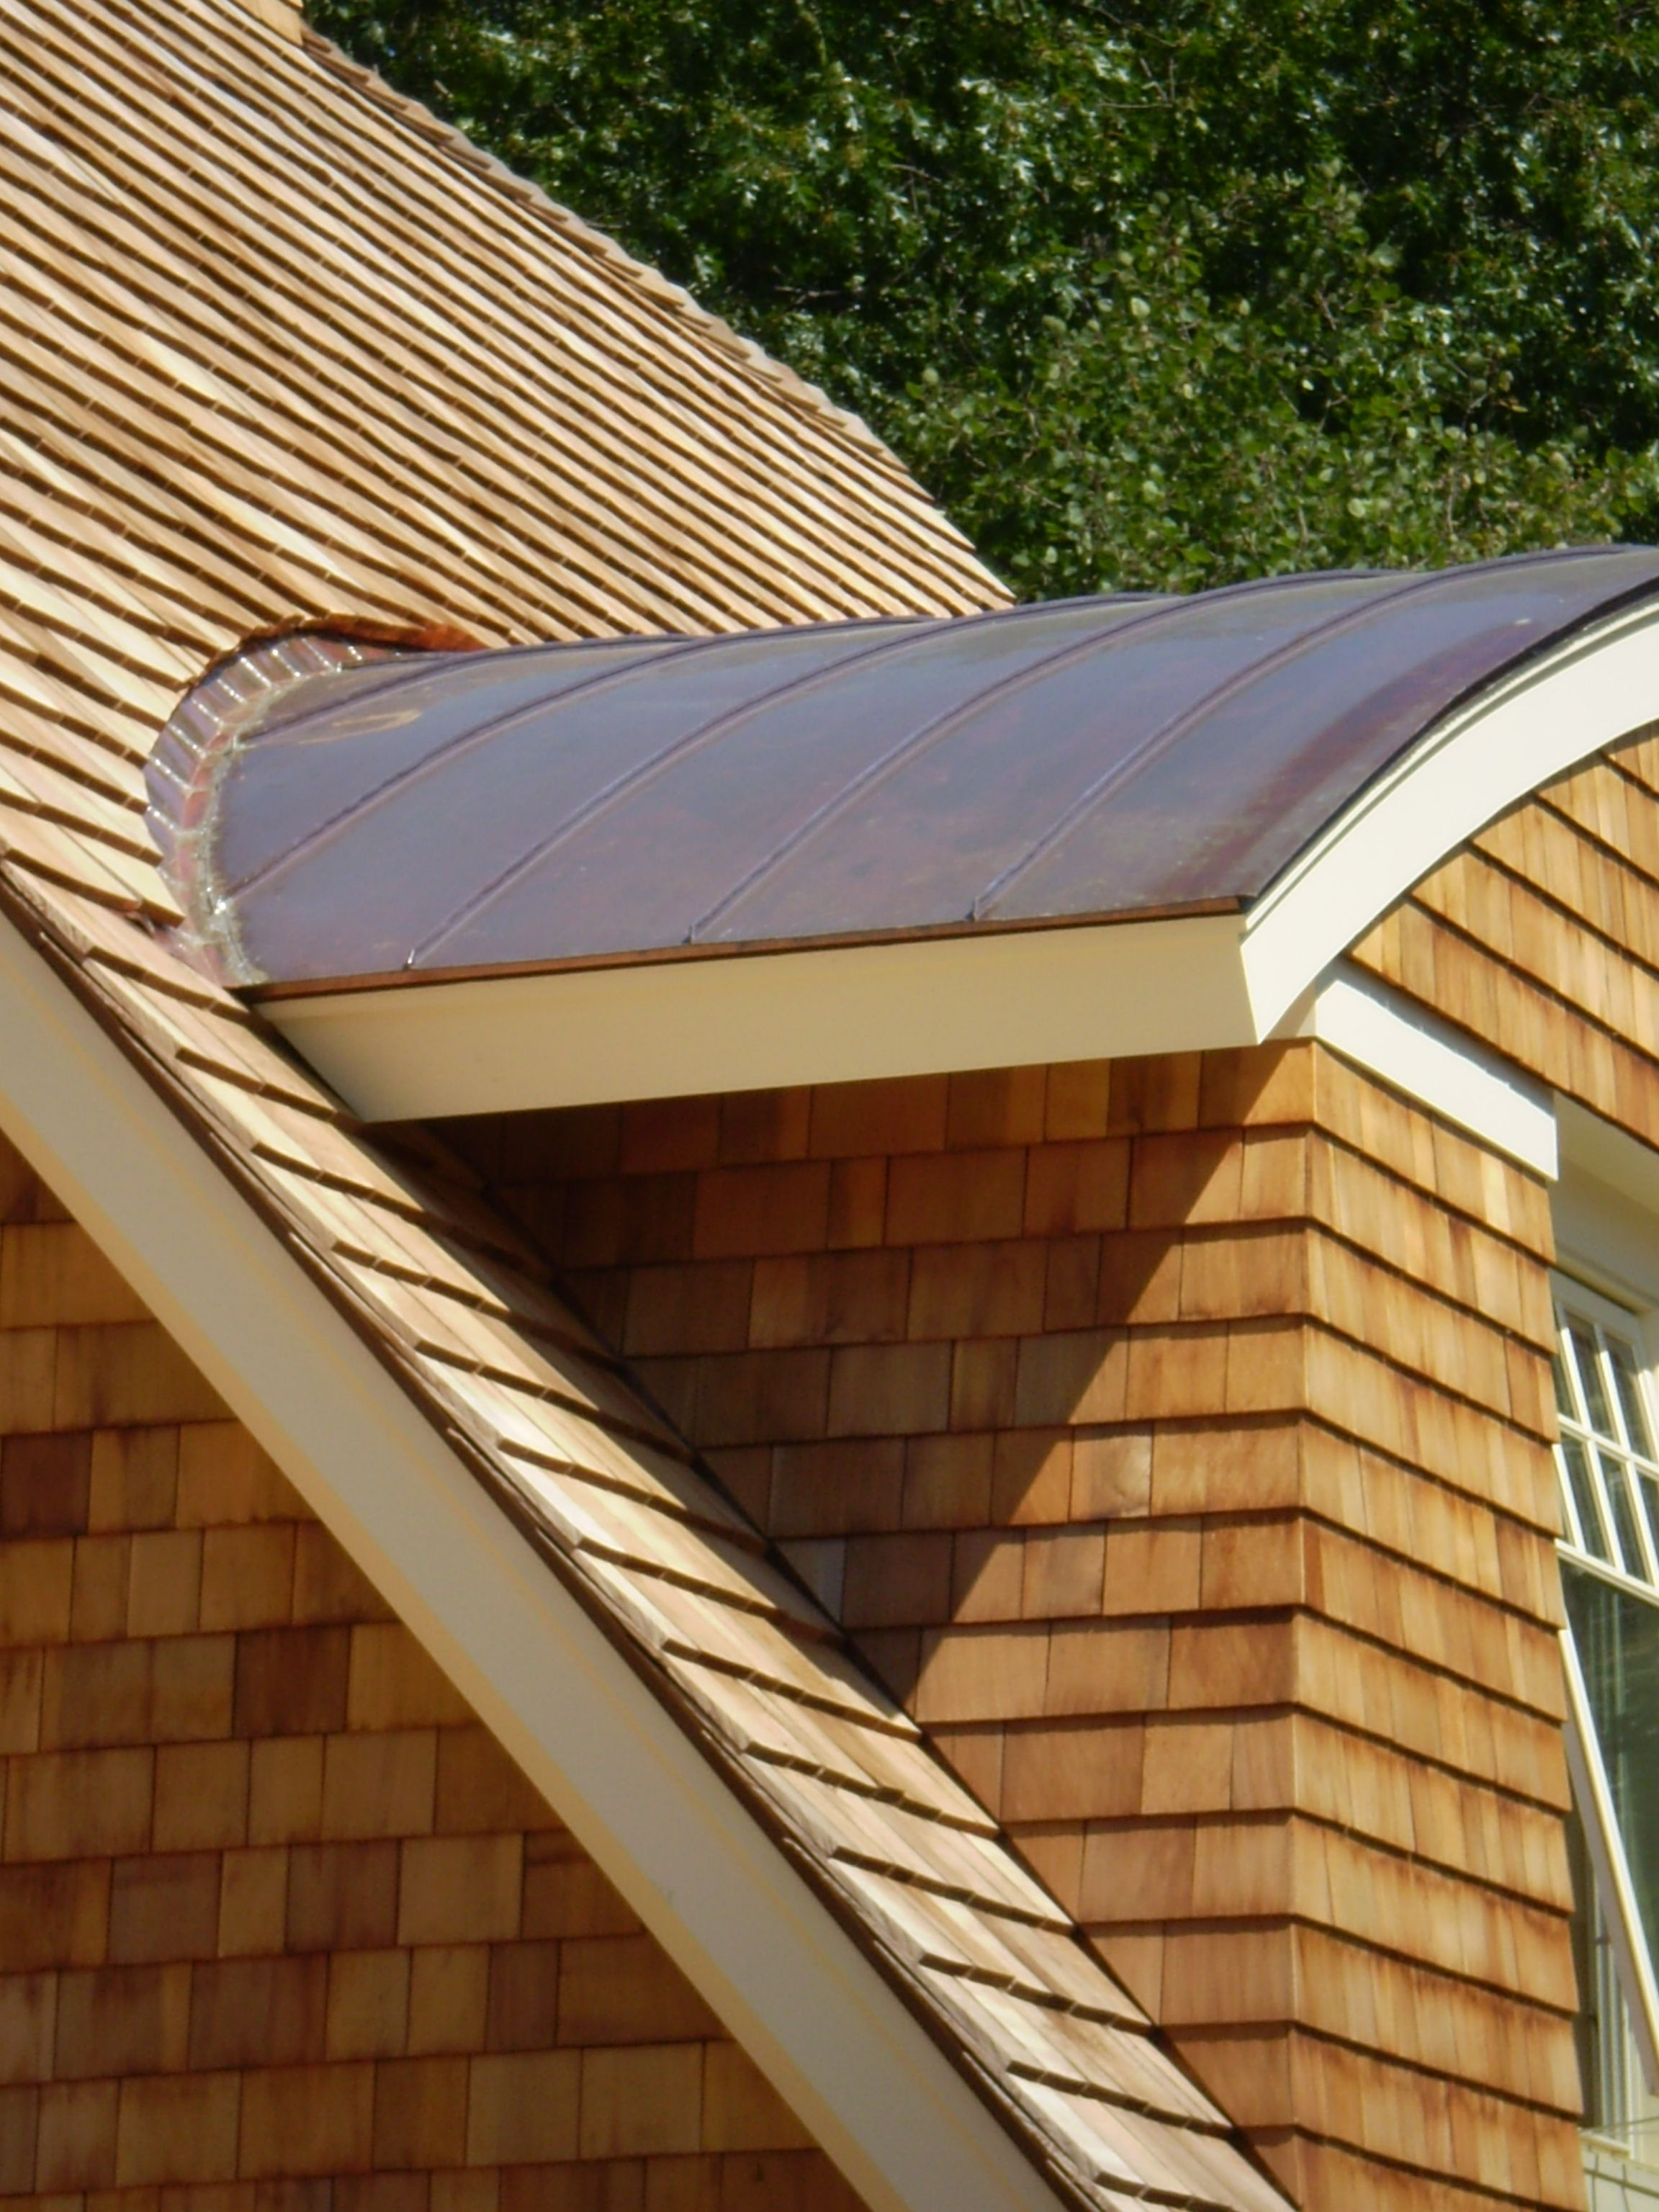 Curved Copper Standing Seam Standing Seam Metal Roof Copper Roof Roof Edge